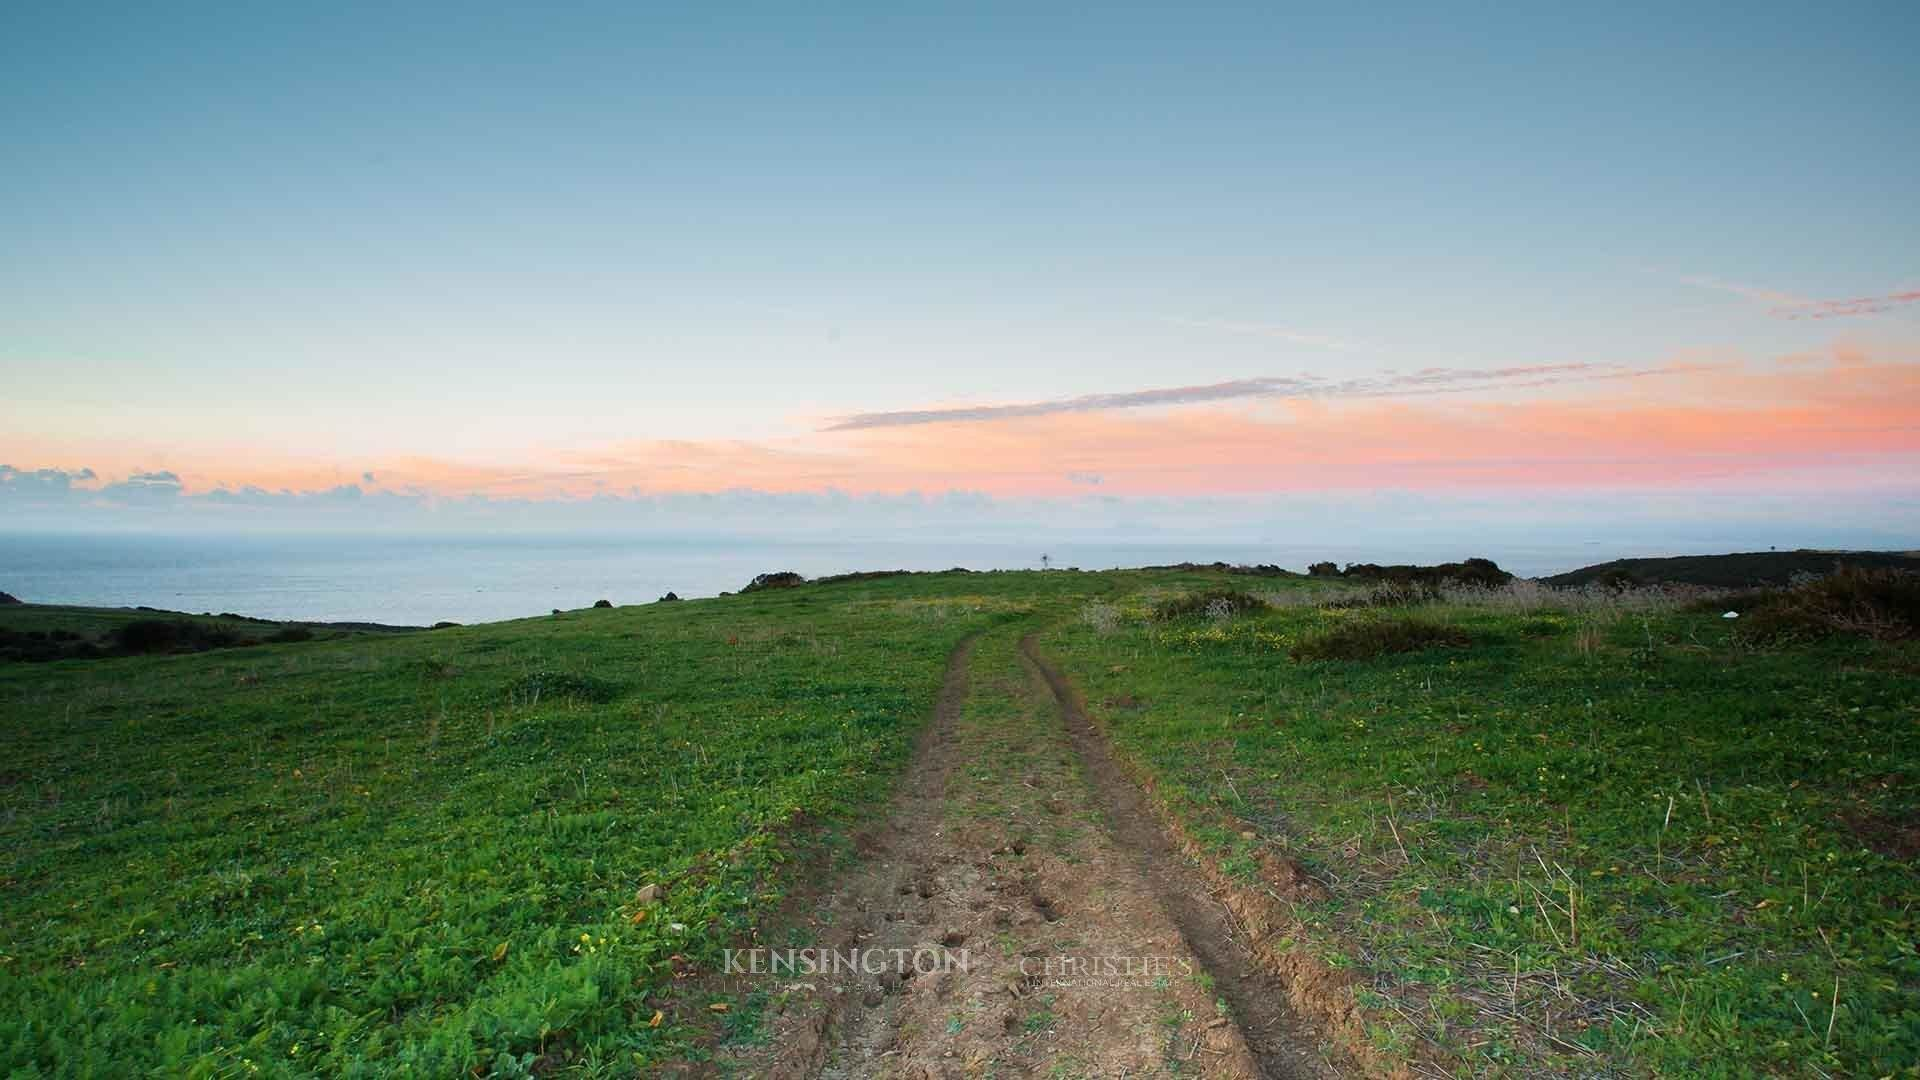 Land/Lot for Sale at Terrain Malabata Tanger, Tanger,90000 Morocco